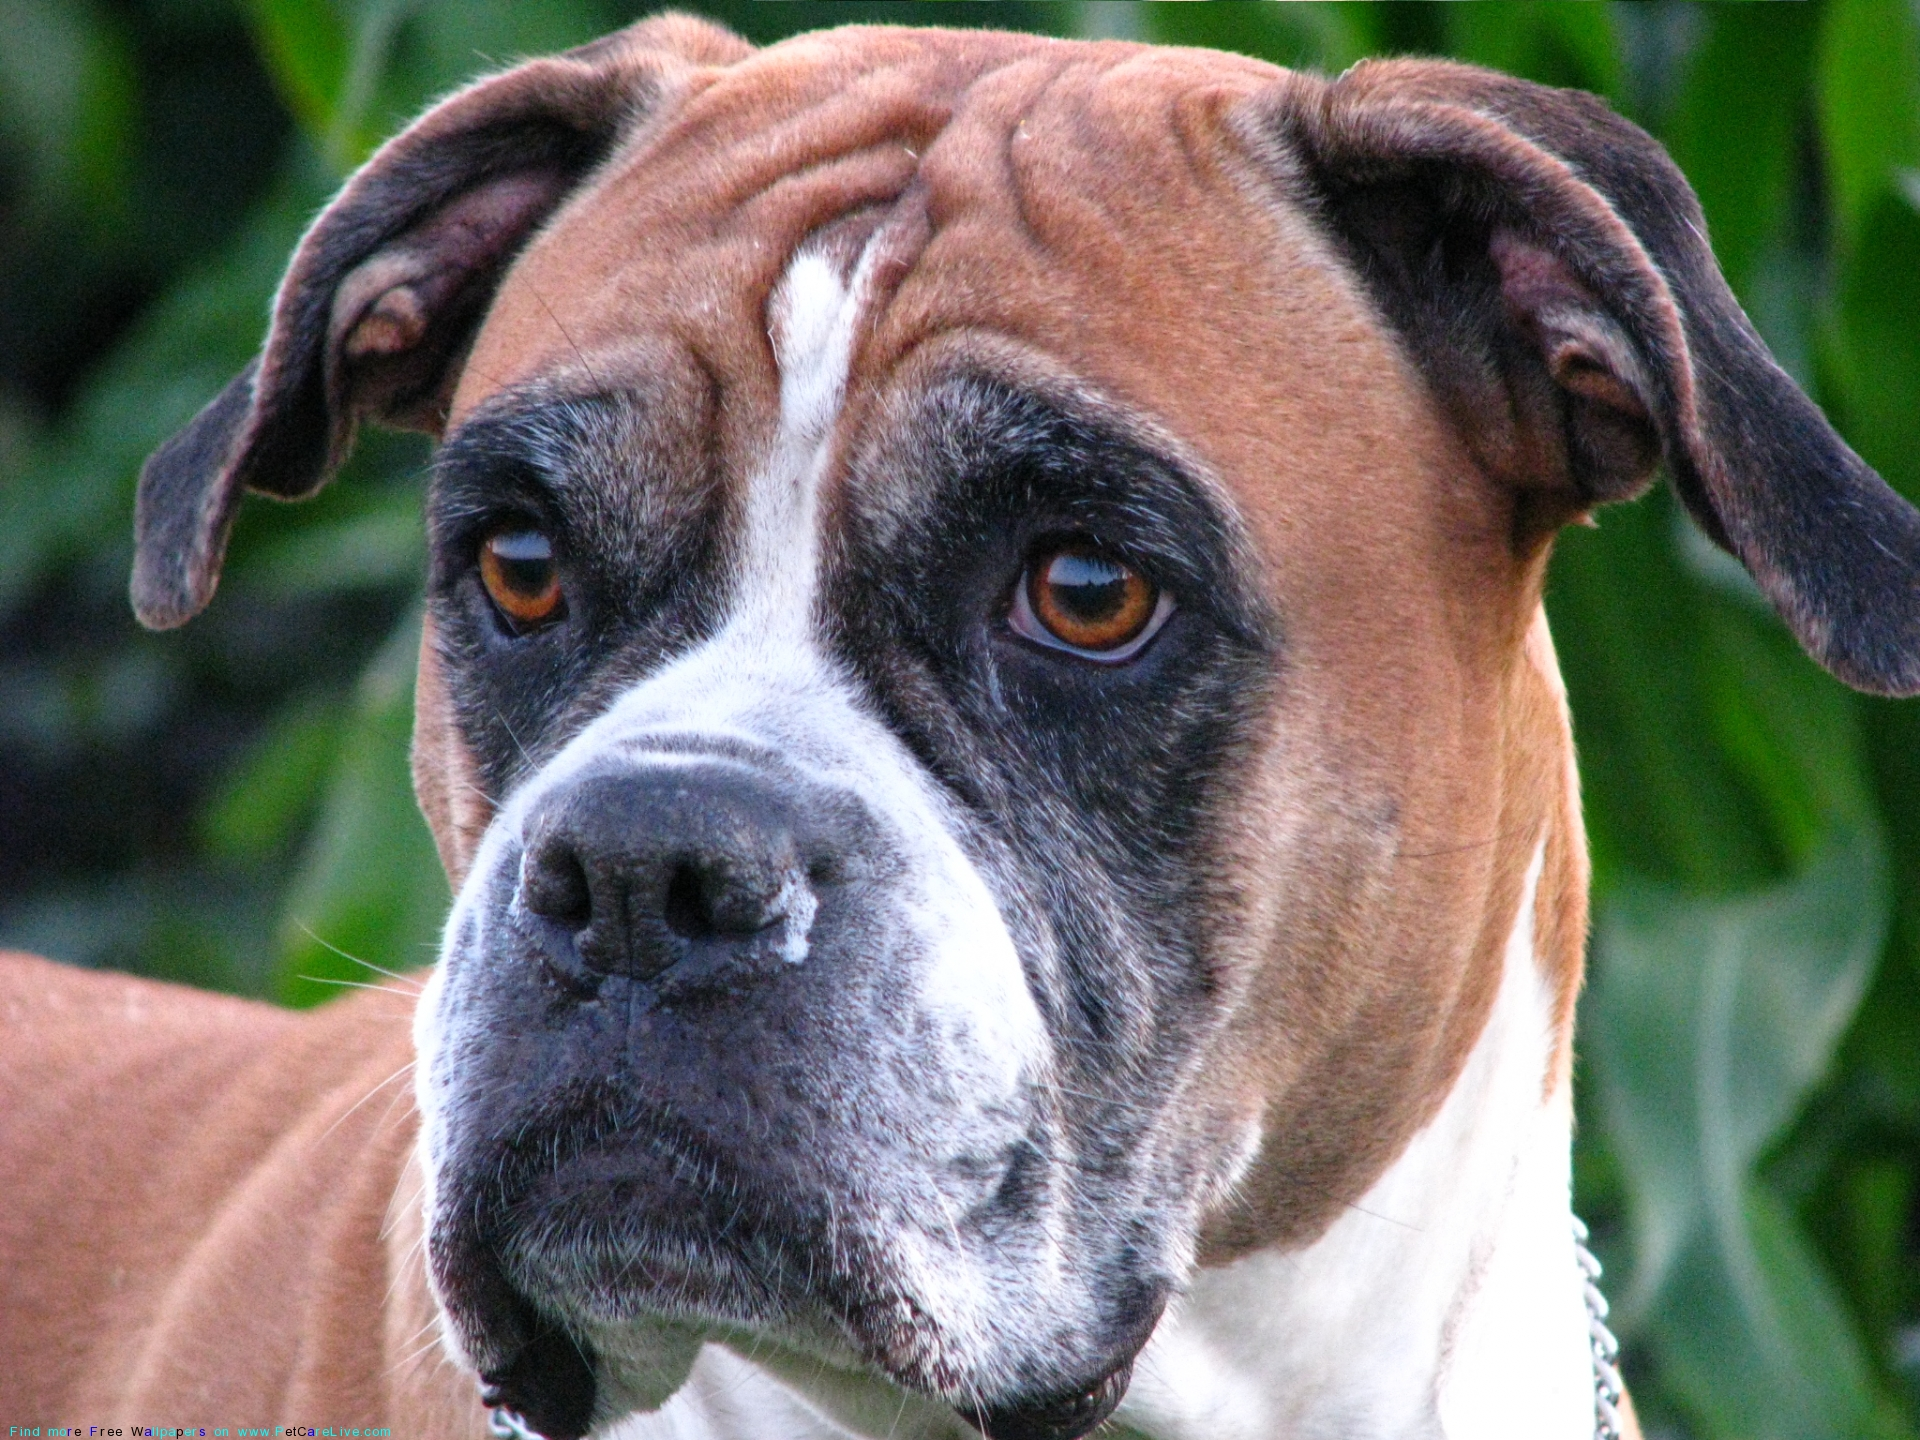 ... Boxer Cross besides Boxer Dog Breed likewise Perros Bulldog Americano